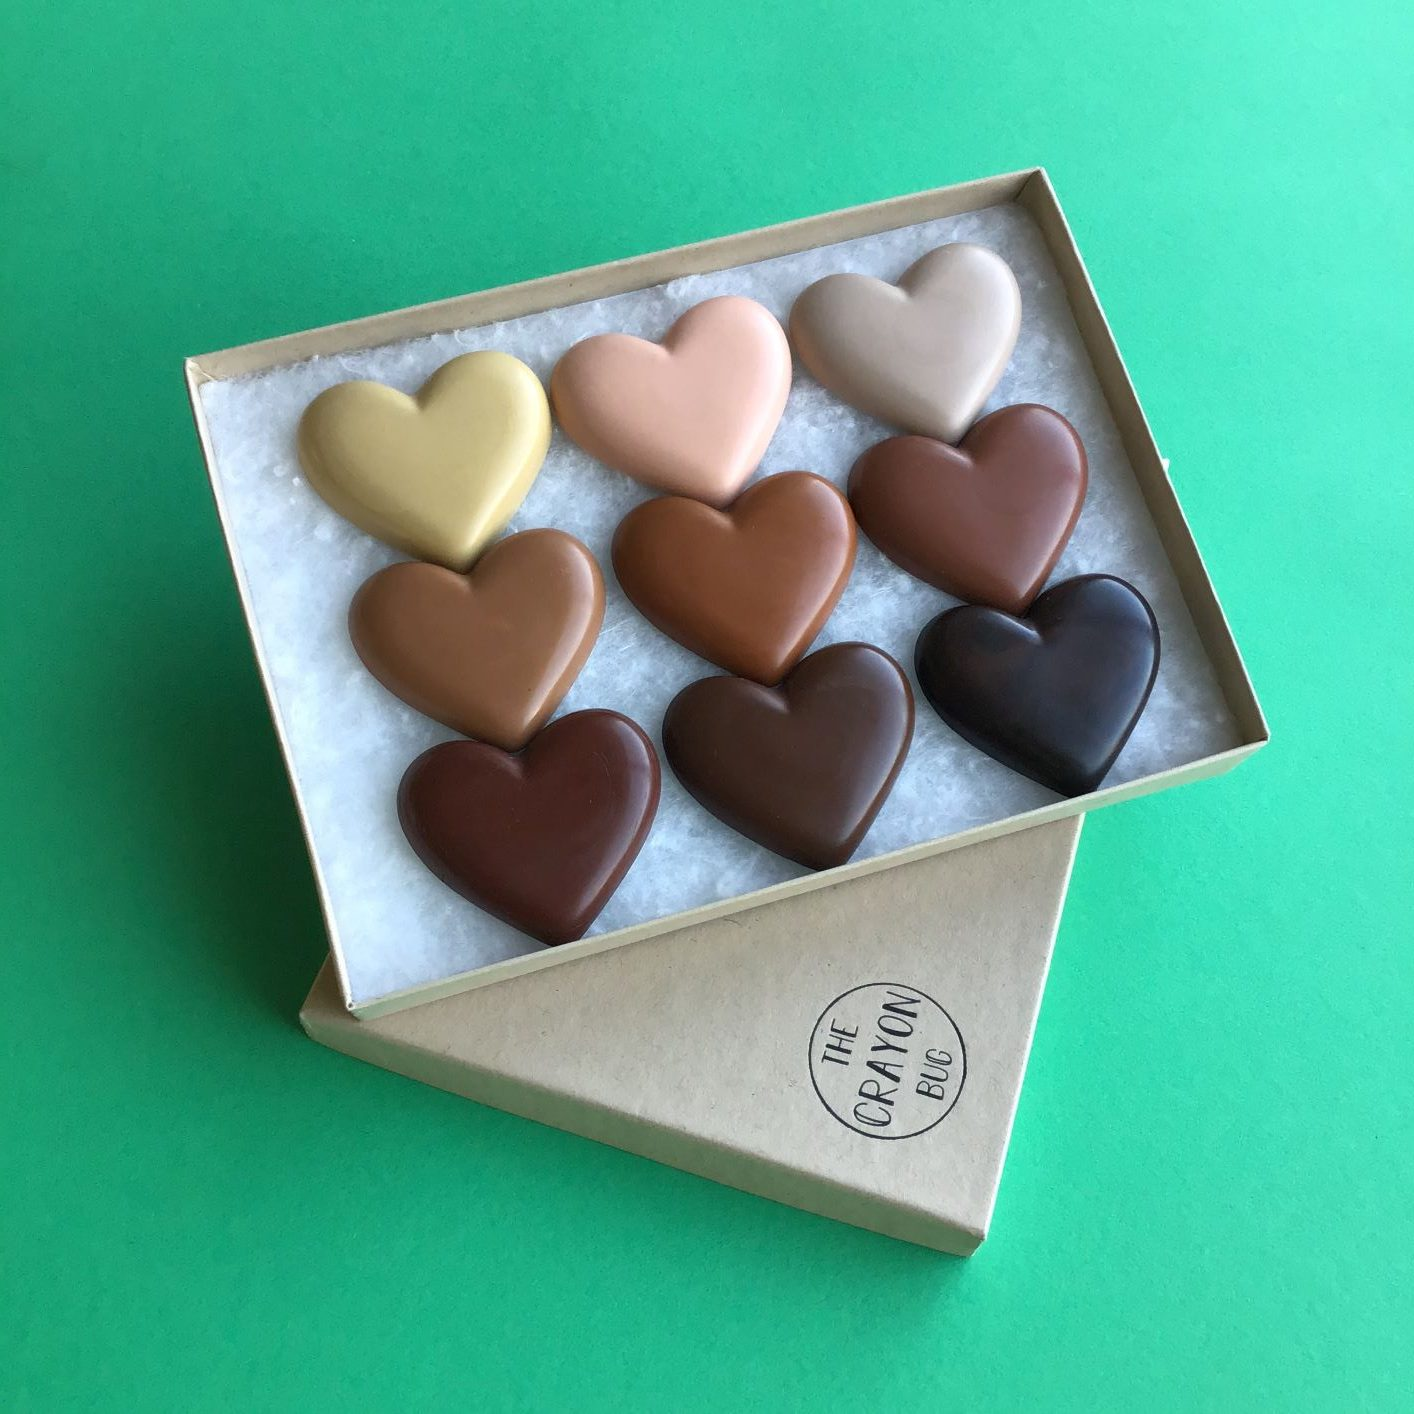 A box of handmade crayons in the shape of chocolates made by The Crayon Bug company